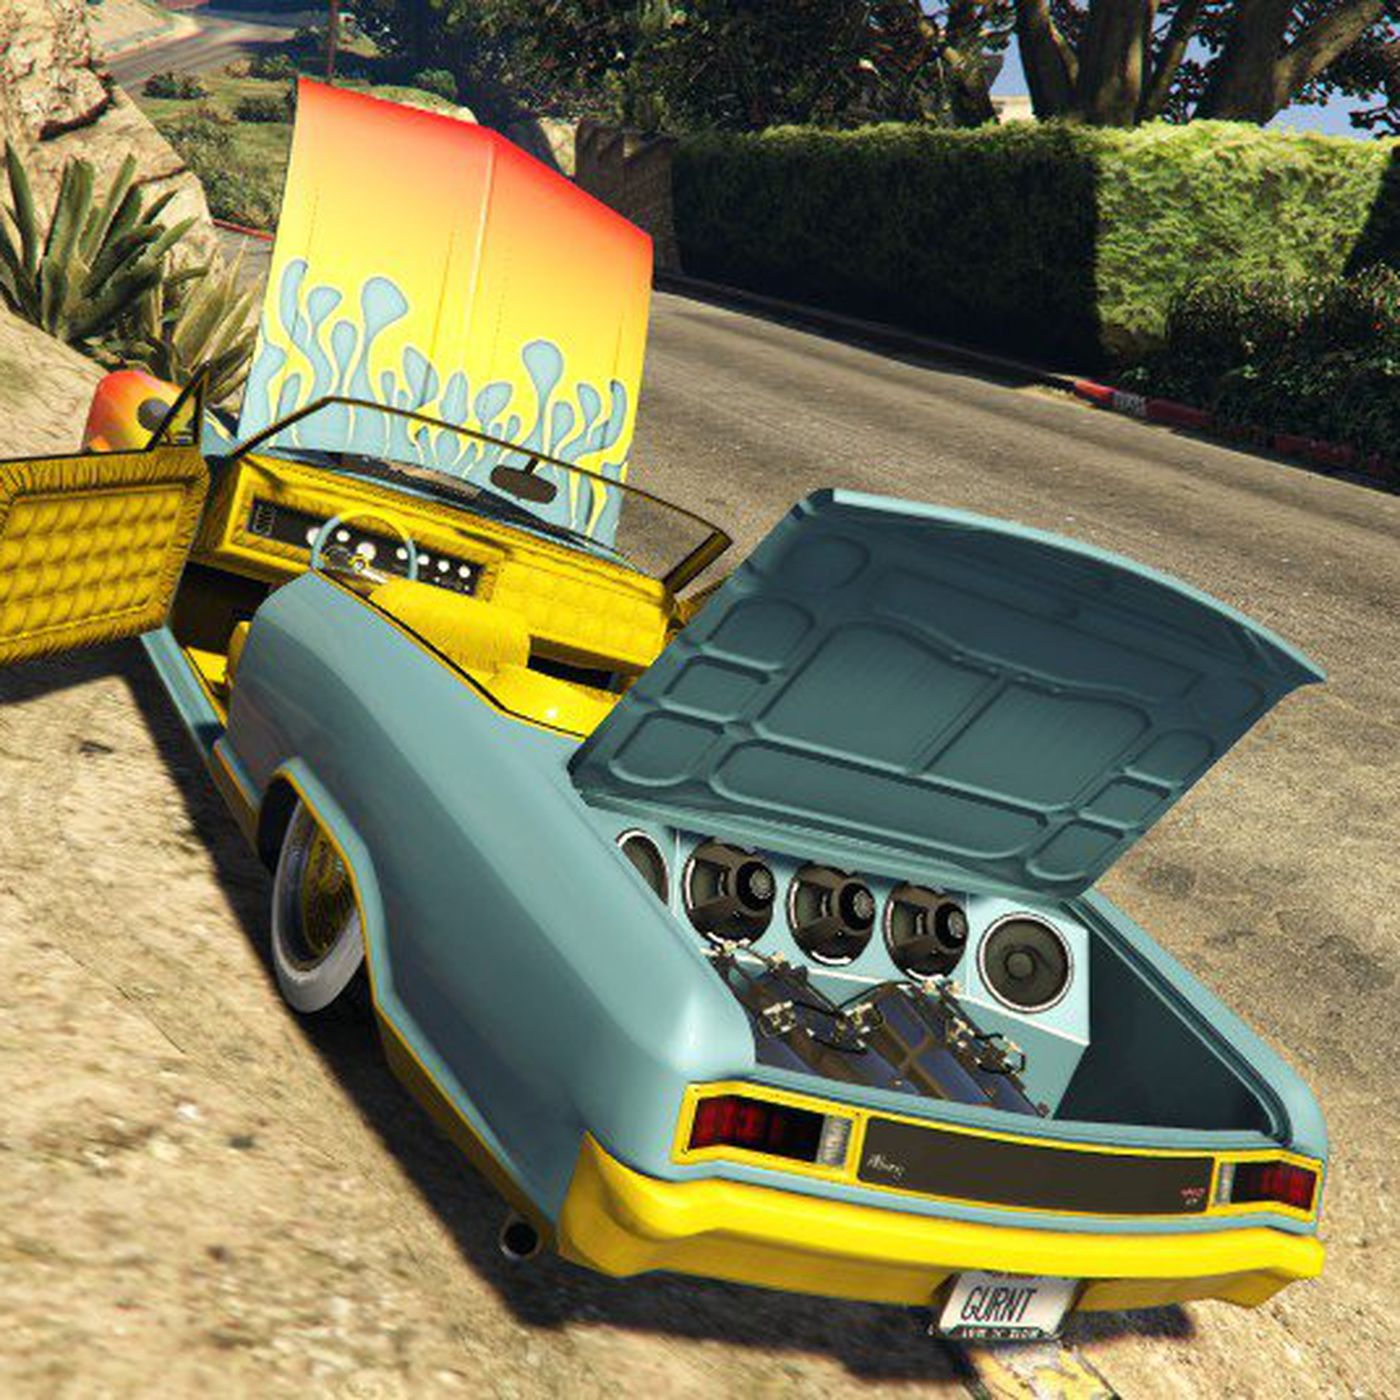 GTA Online griefers get their comeuppance, and it's glorious - Polygon